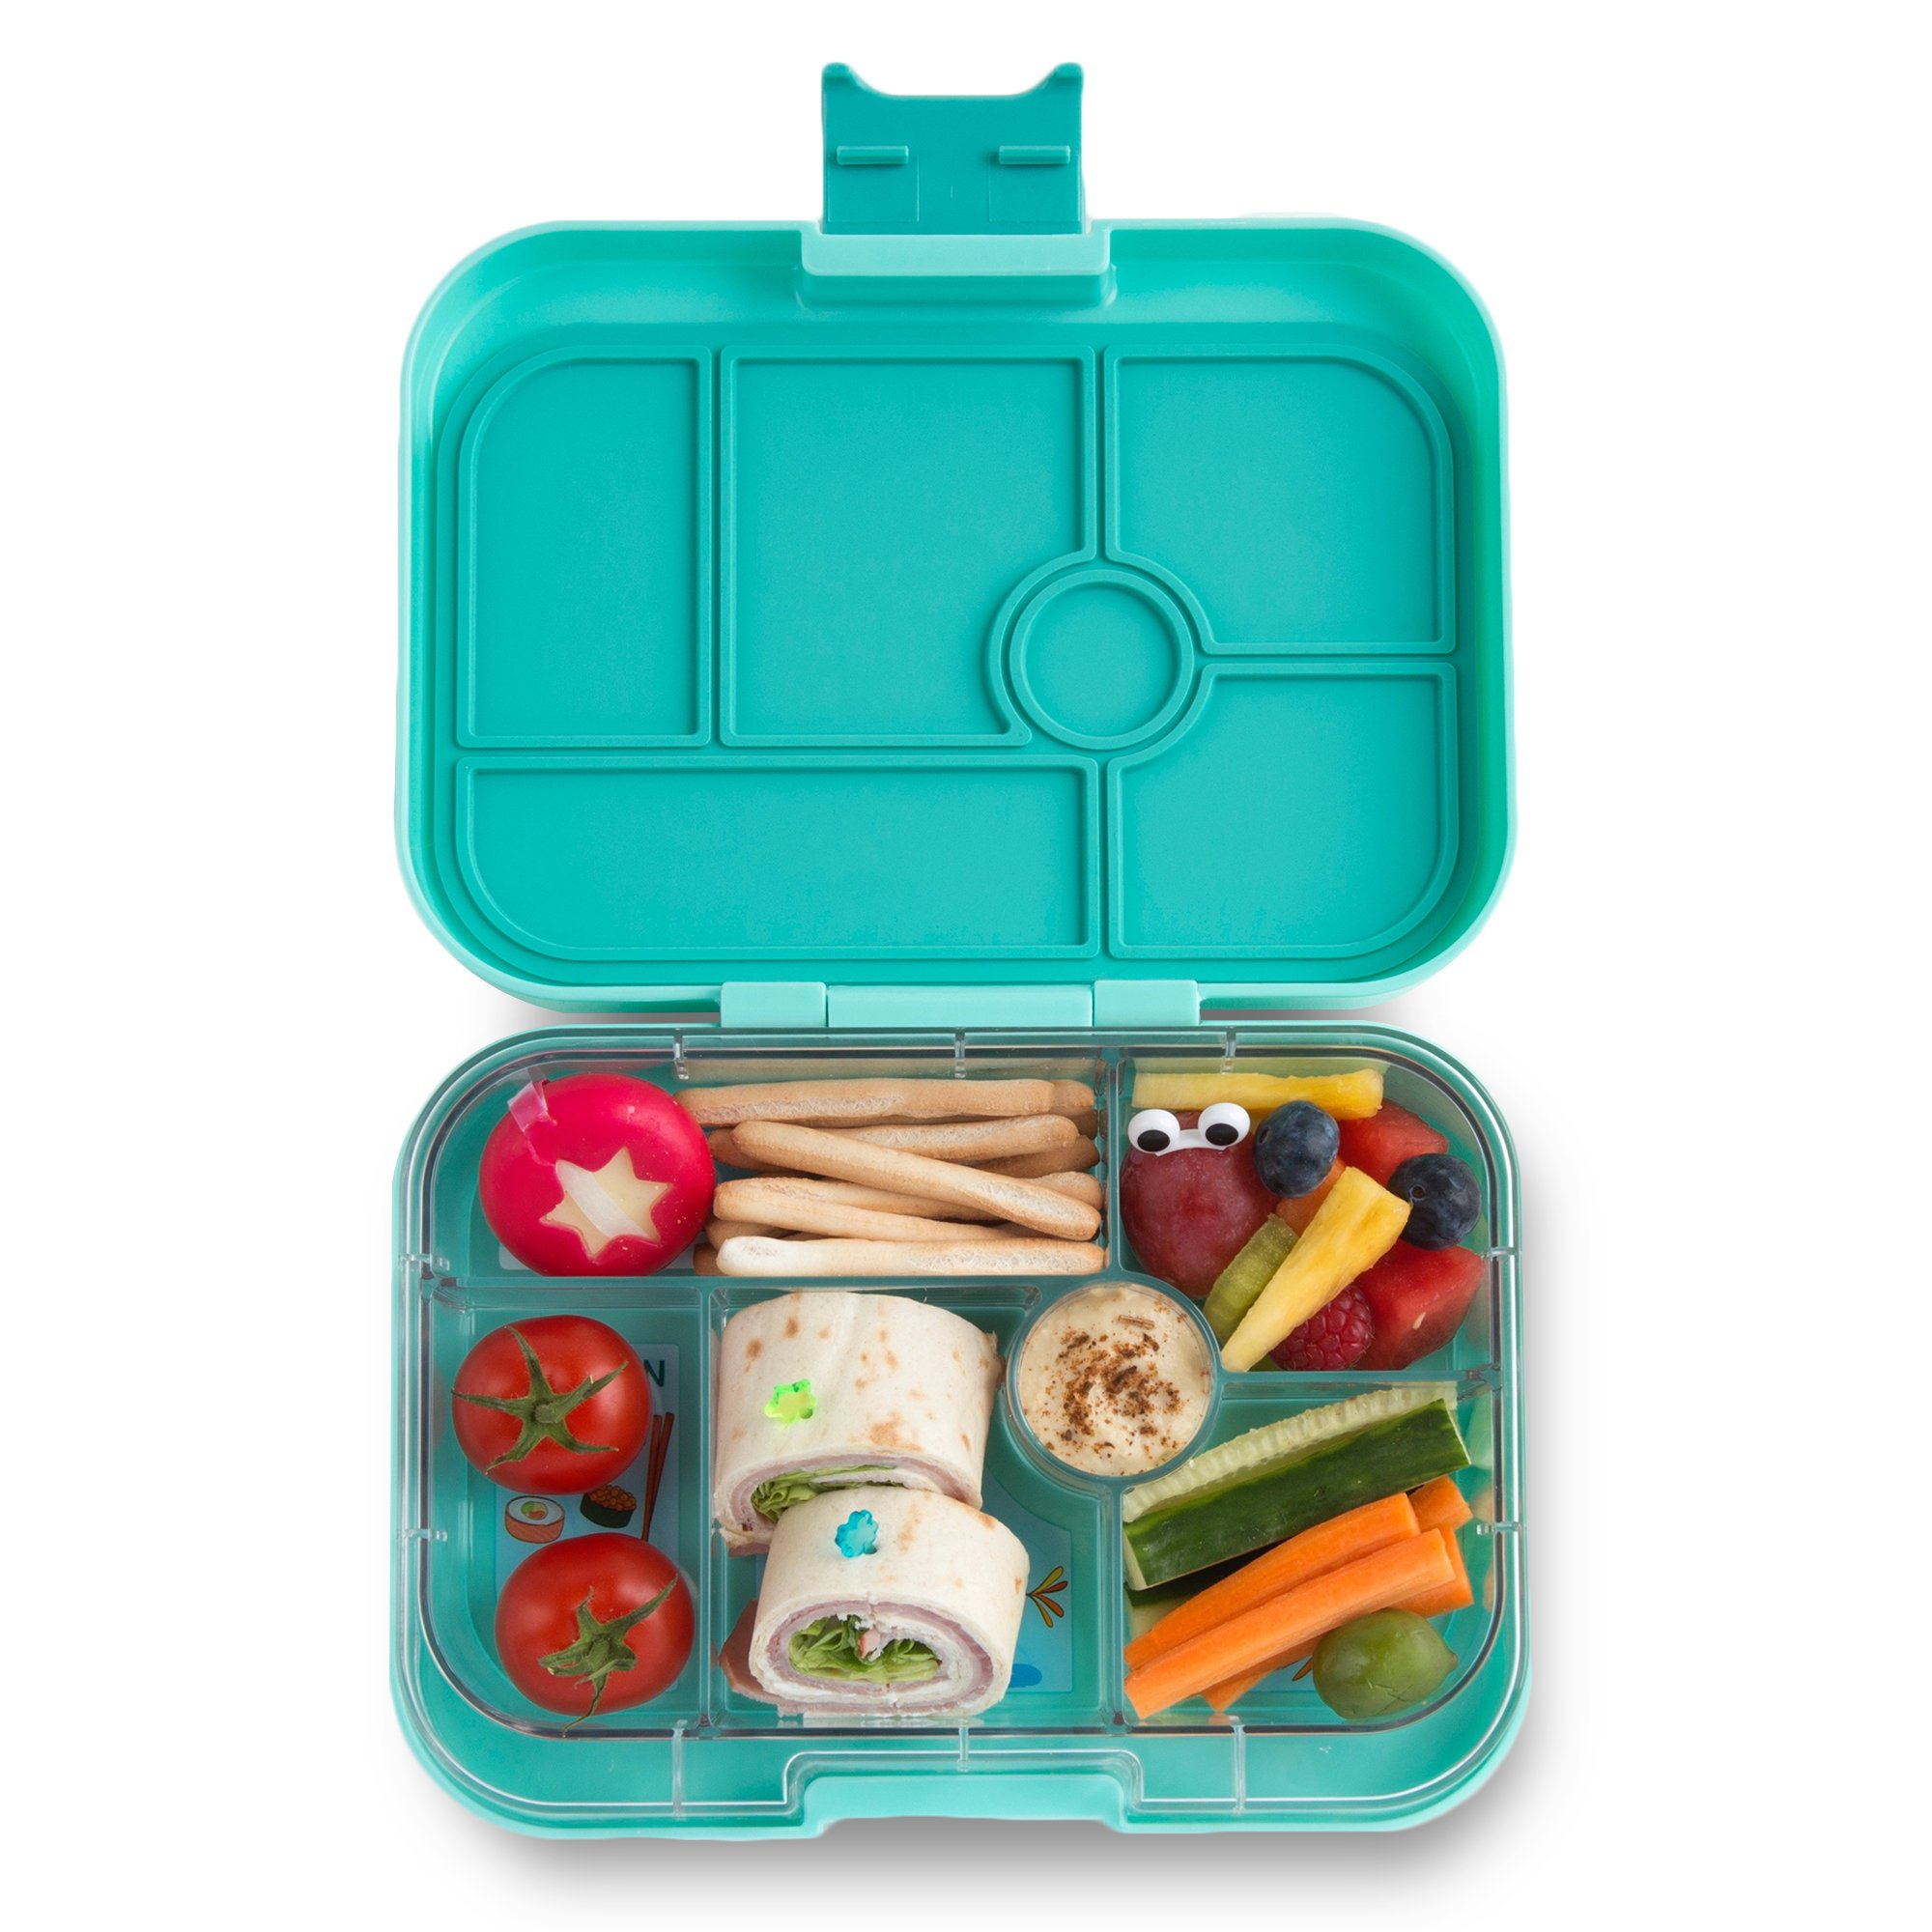 YUMBOX Original (Surf Green) Leakproof Bento Lunch Box Container for Kids